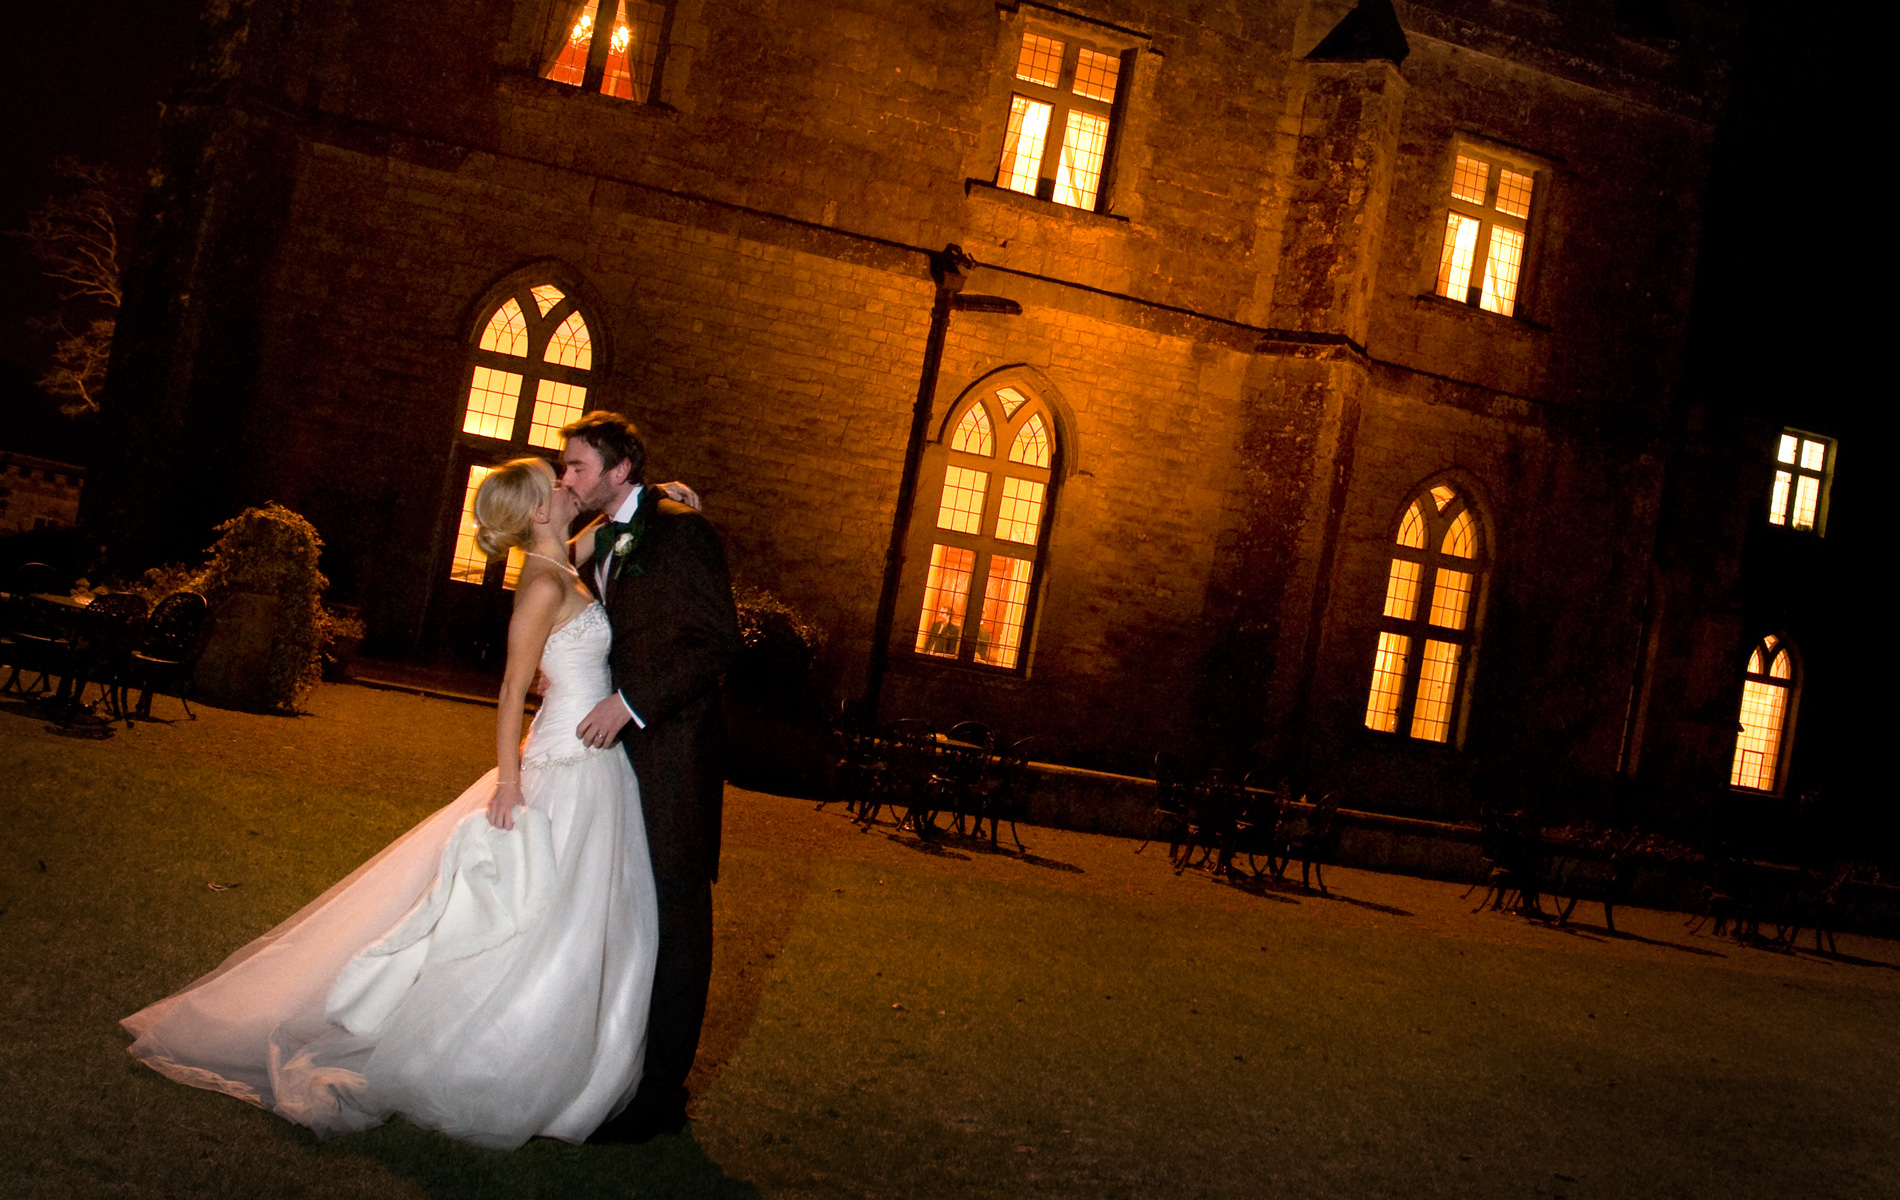 clearwell-castle-wedding-photographer-nightime-bride-groom-winter-weddings-south-wales-wedding-photographernighttime wedding photo of Bride & groom kissing, Clearwell castle weddings.